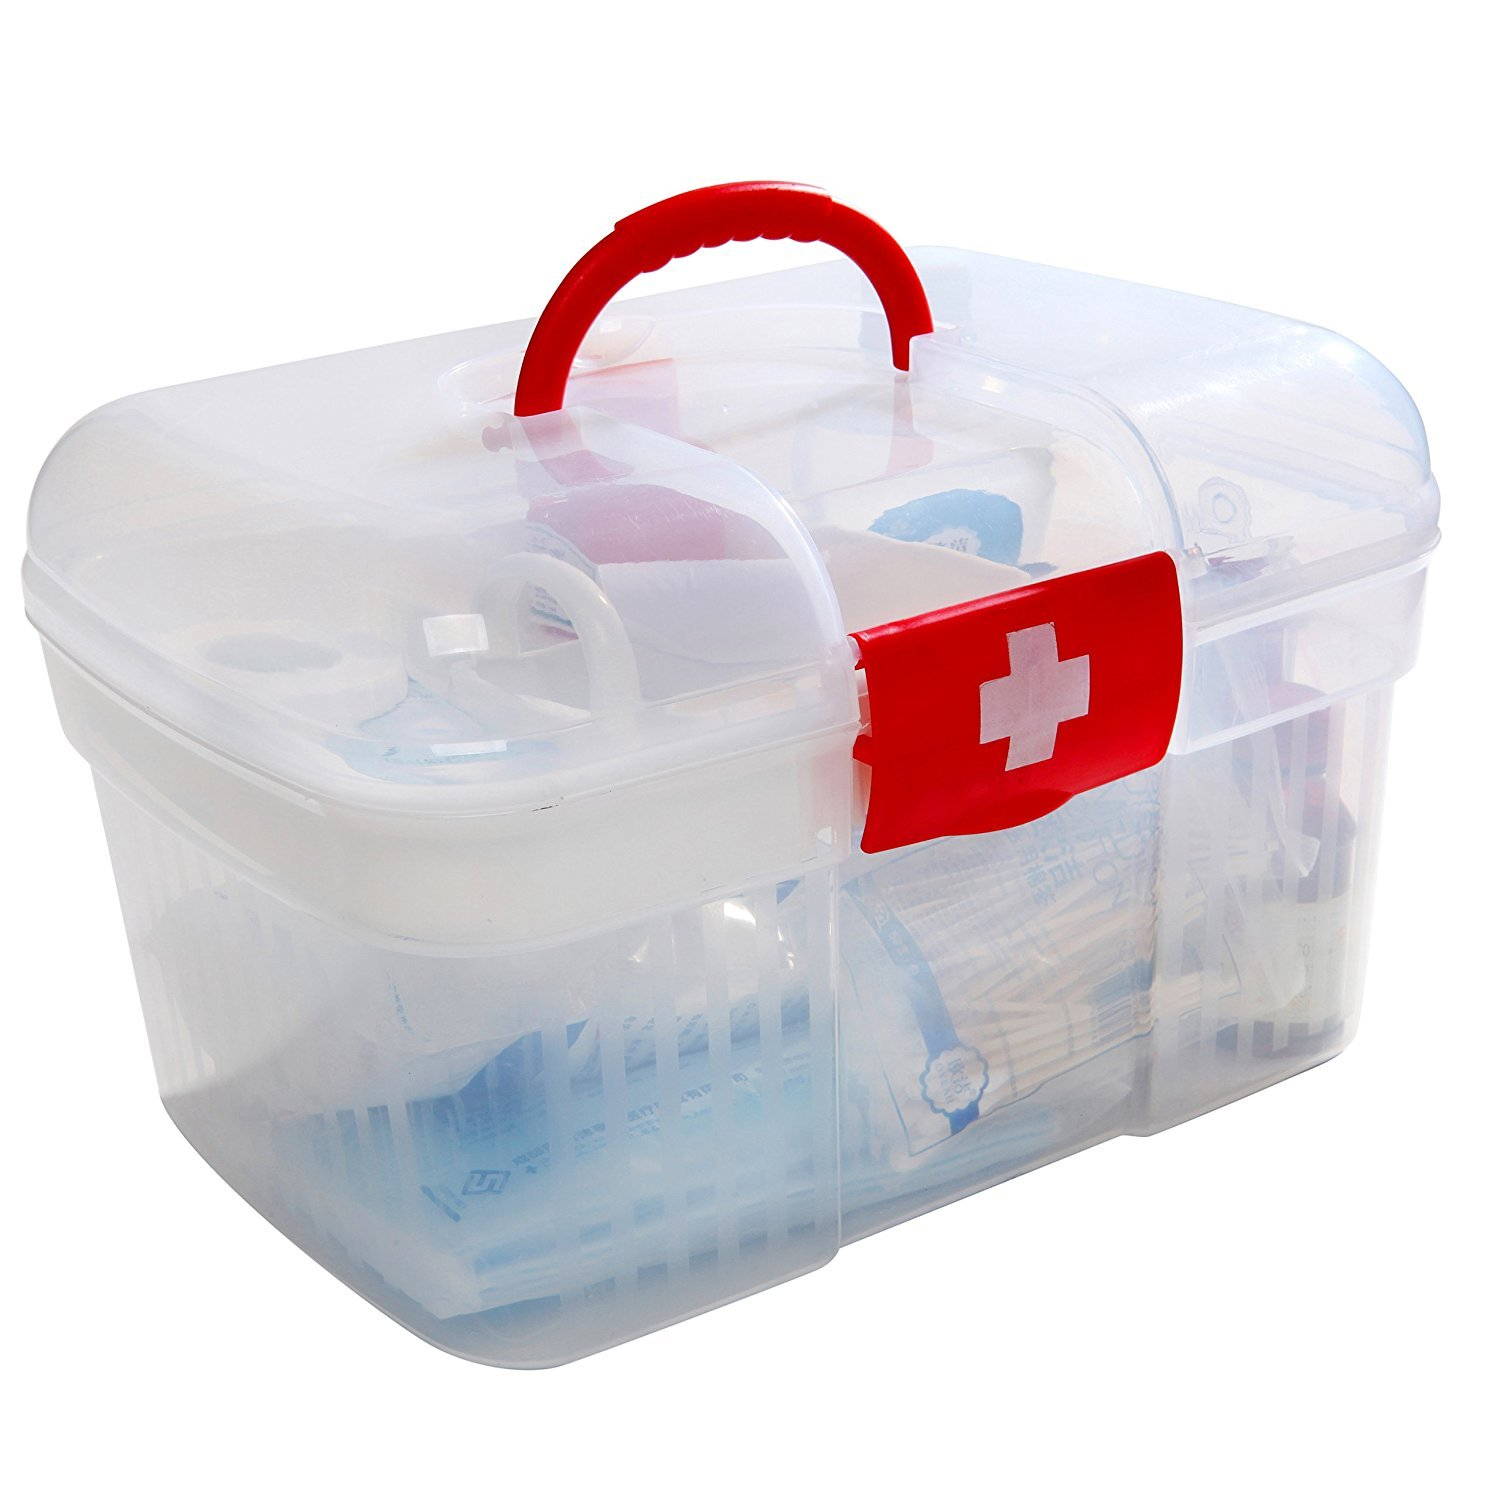 Inditradition First Aid Kit Storage Box   Travel Medical Box - 25x16x16 cm  (Transparent): Amazon.in: Home & Kitchen